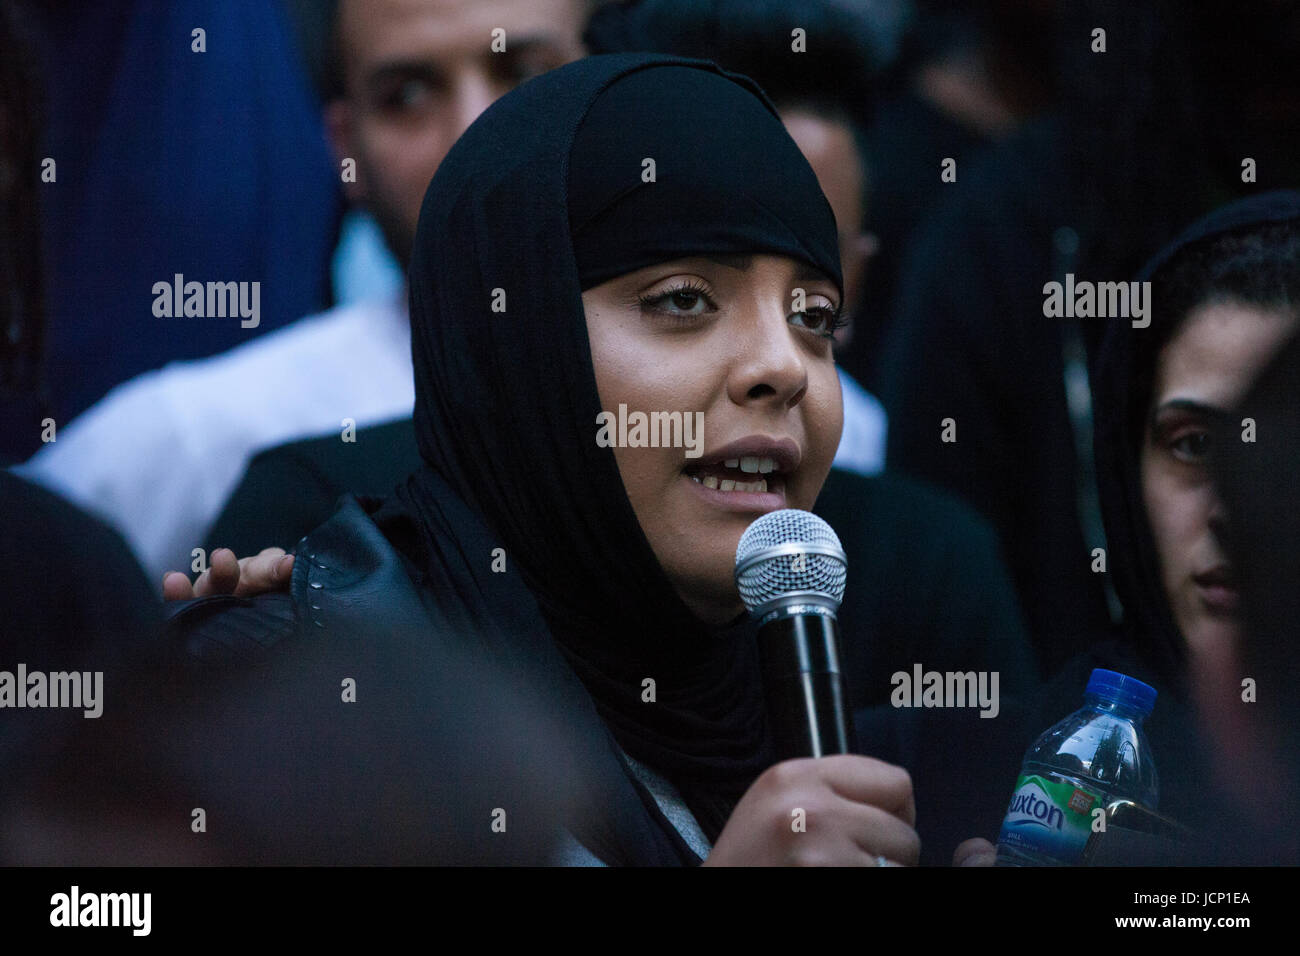 London, UK. 16th June, 2017. A young woman addresses members of the community of North Kensington protesting outside - Stock Image